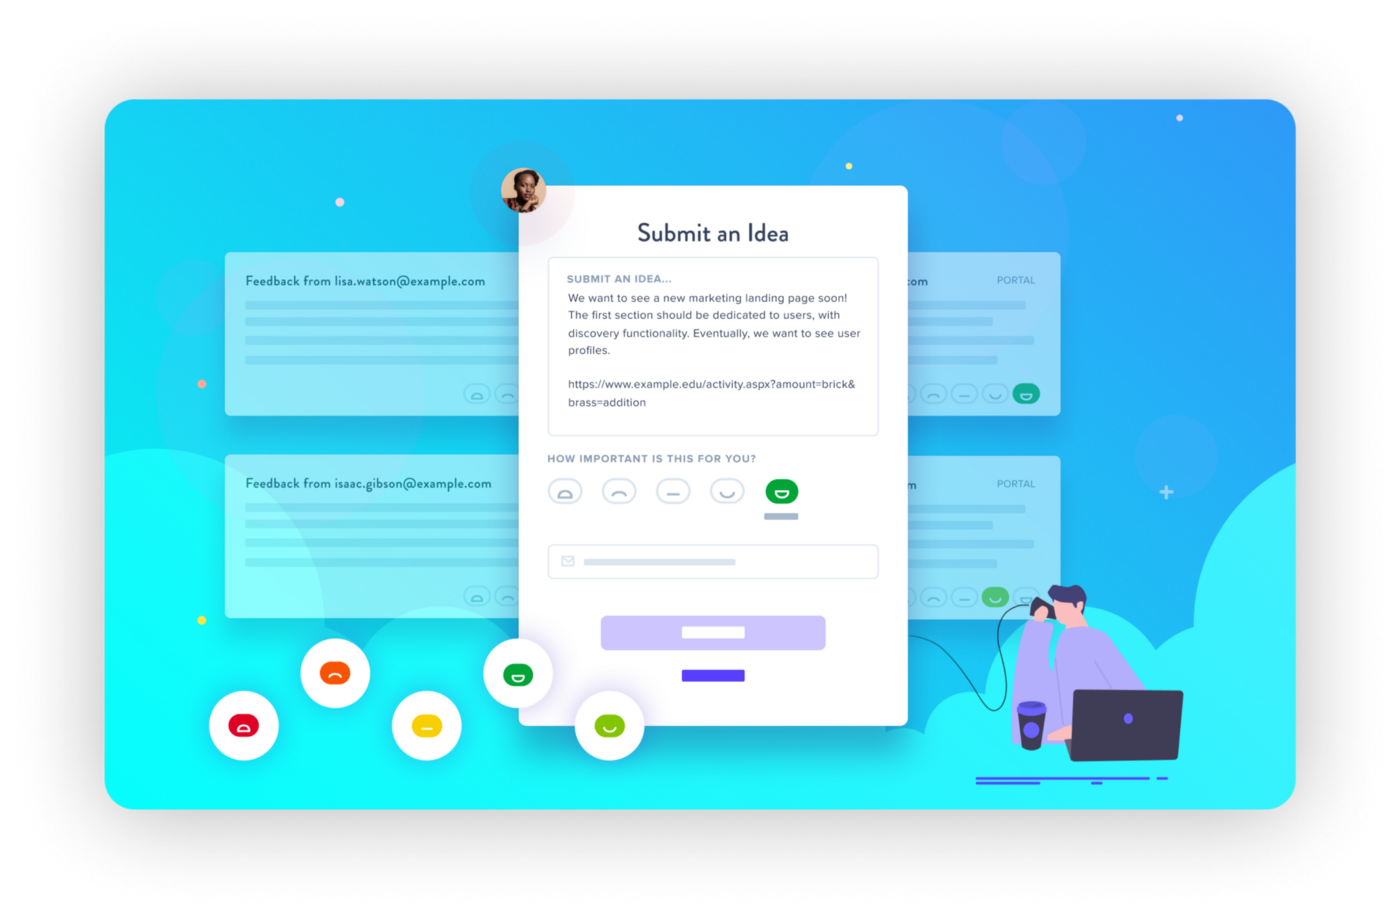 Your public roadmap will allow your product management team to more efficiently collect and analyze user feedback